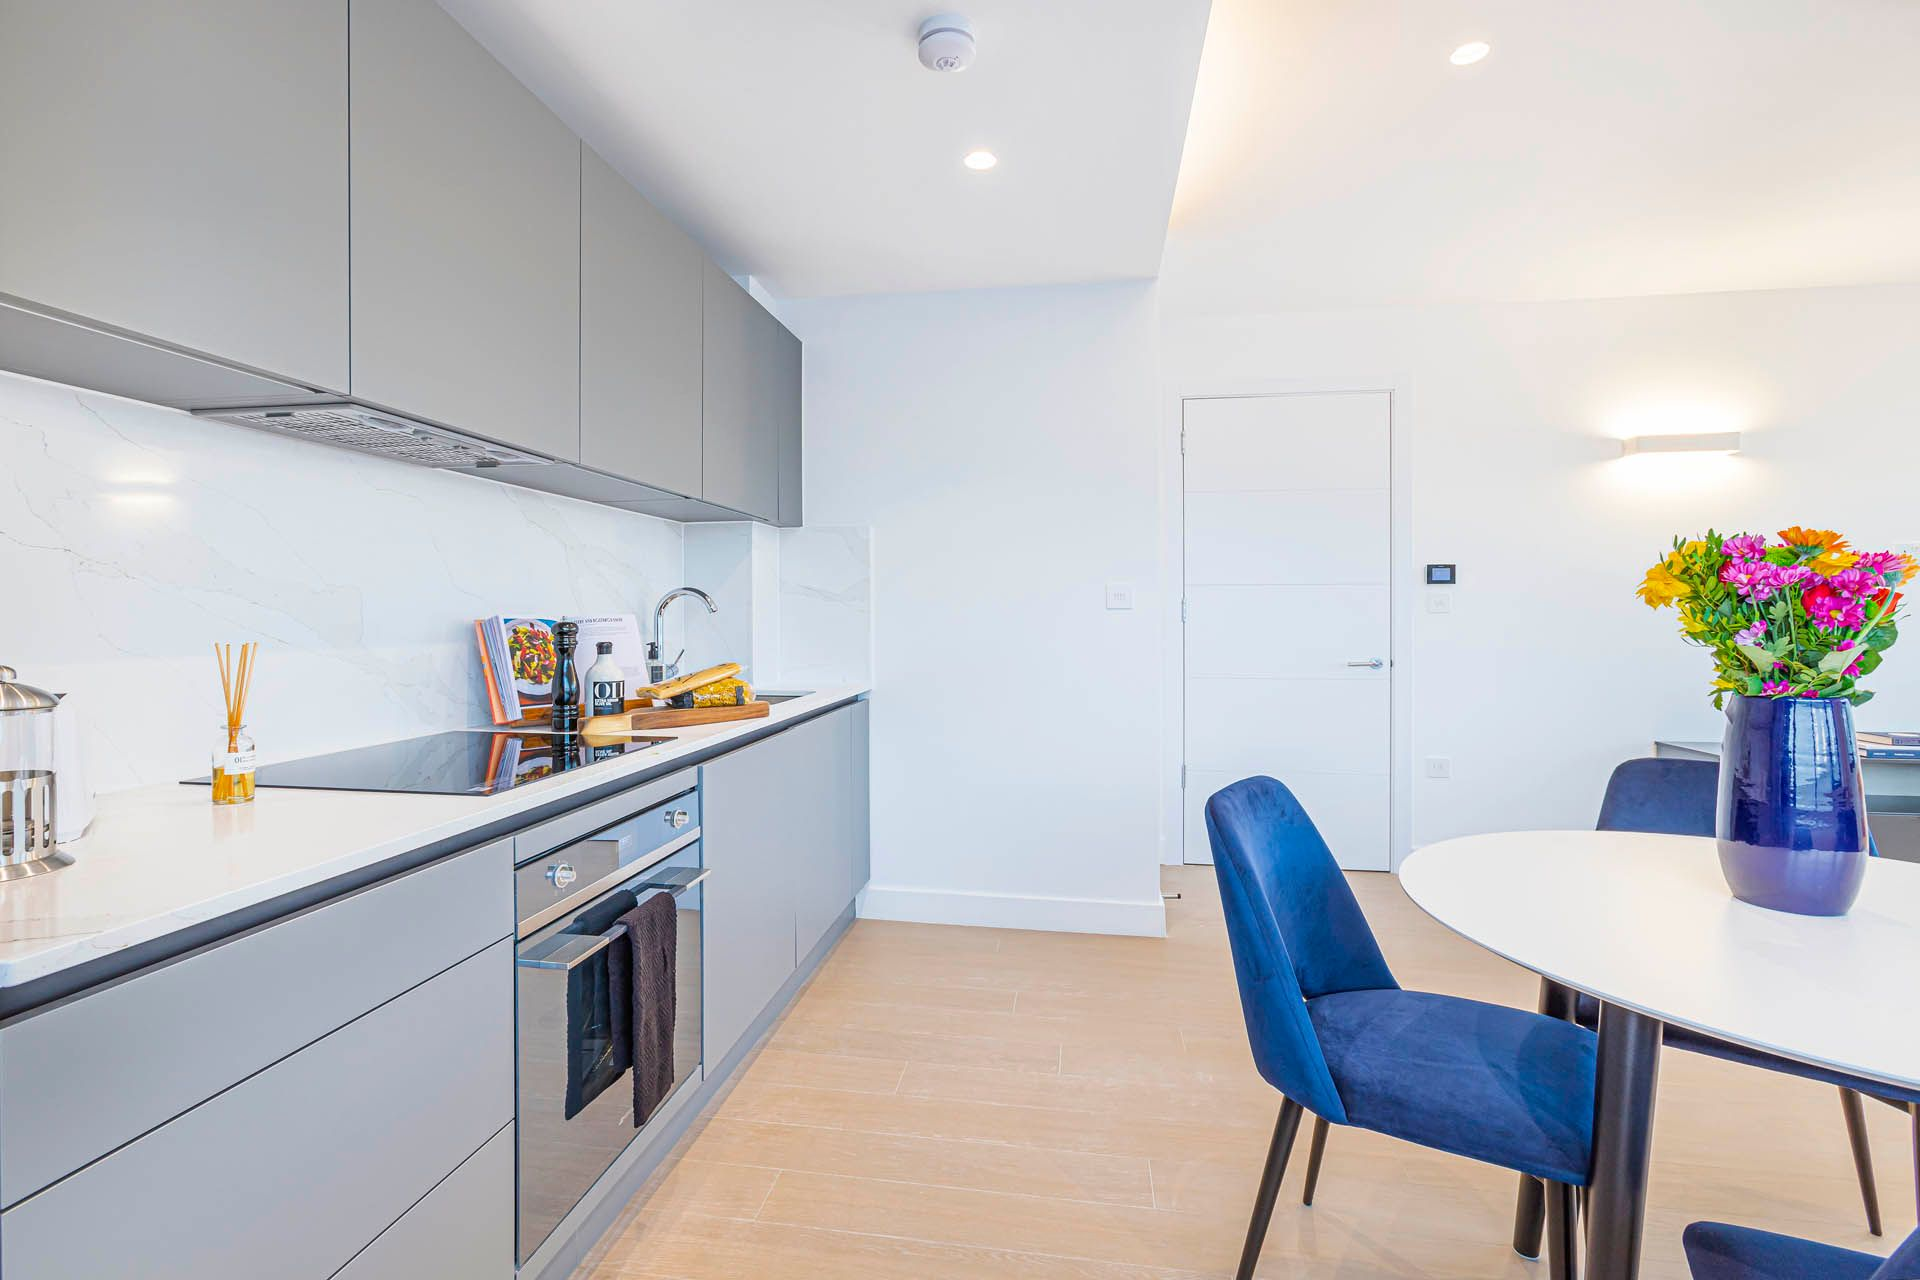 1 Bedroom apartment to rent in London SKI-FH-0035